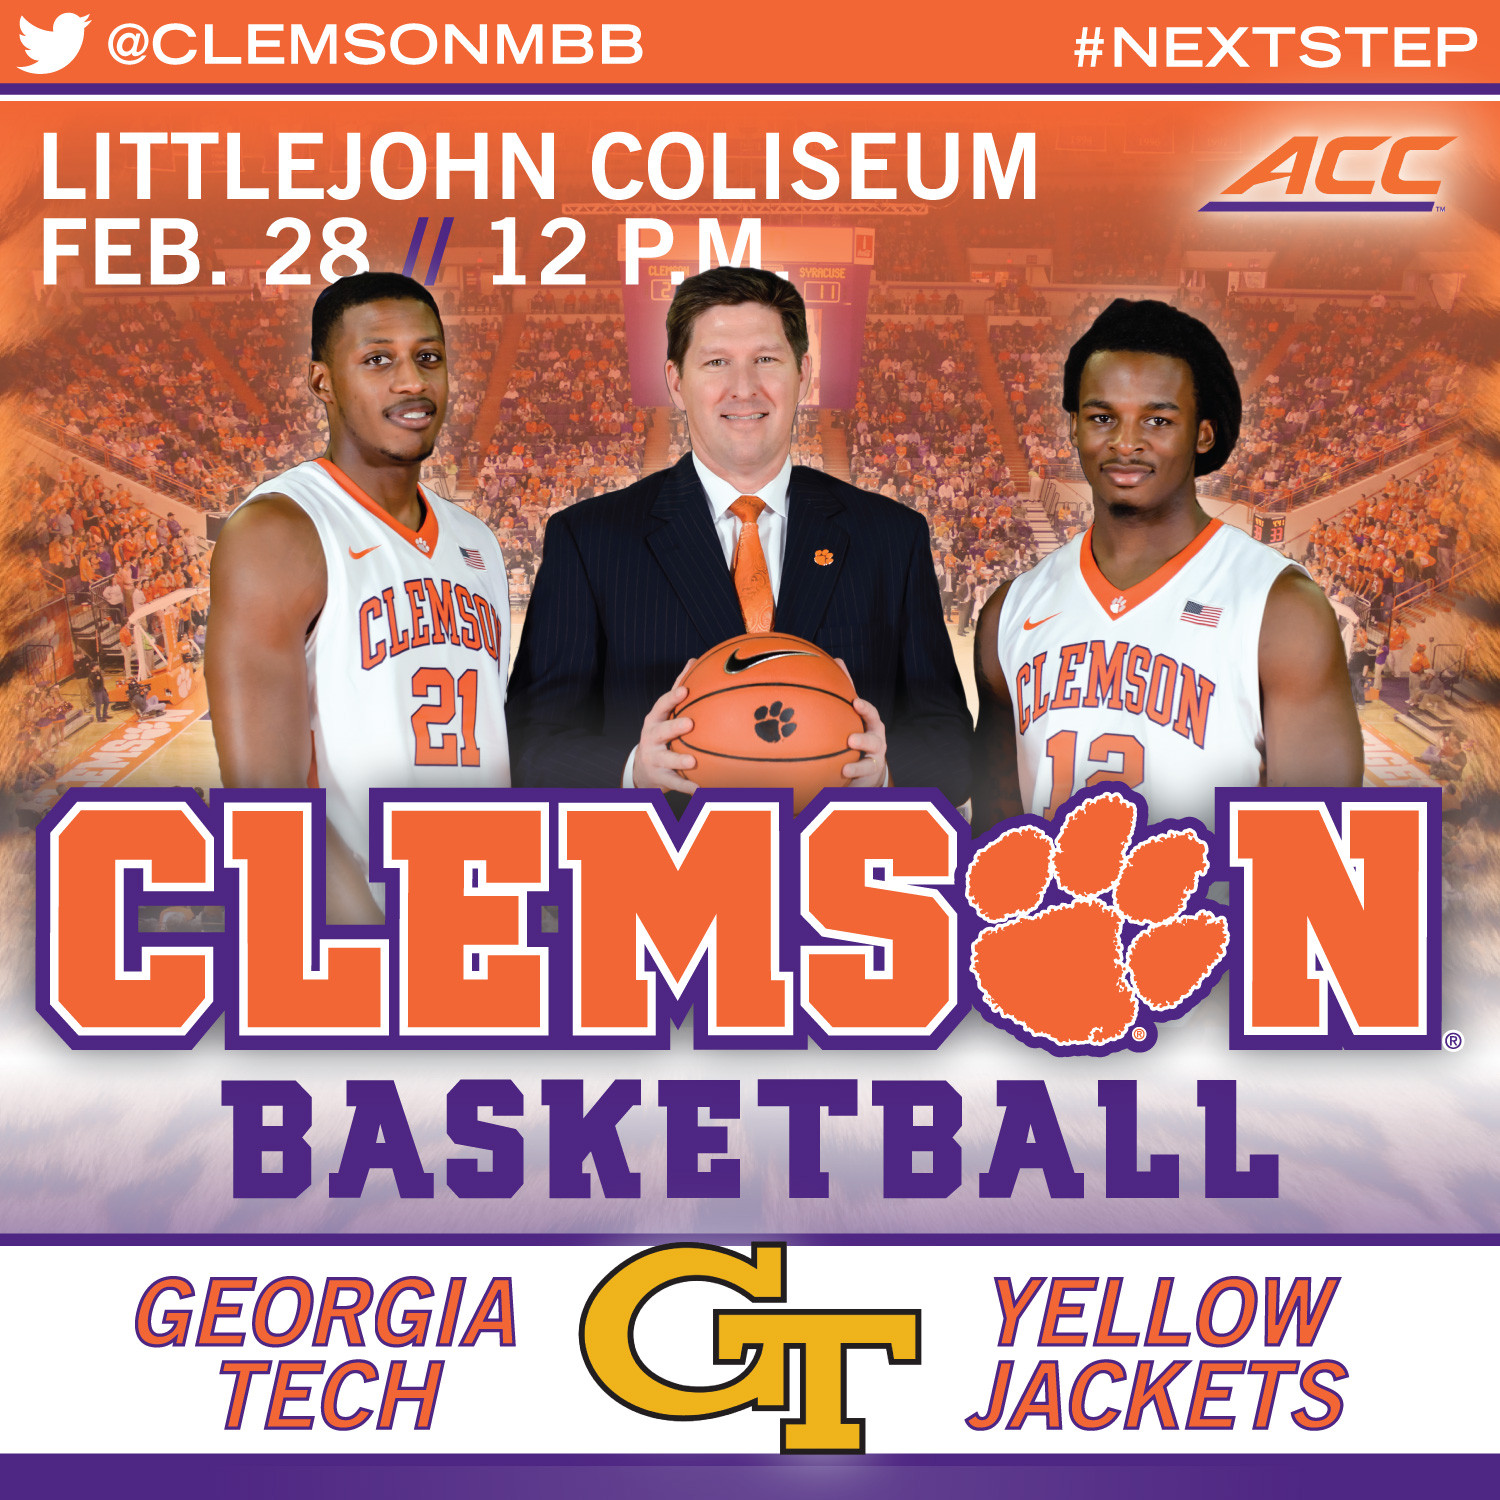 Tigers Host Georgia Tech Saturday